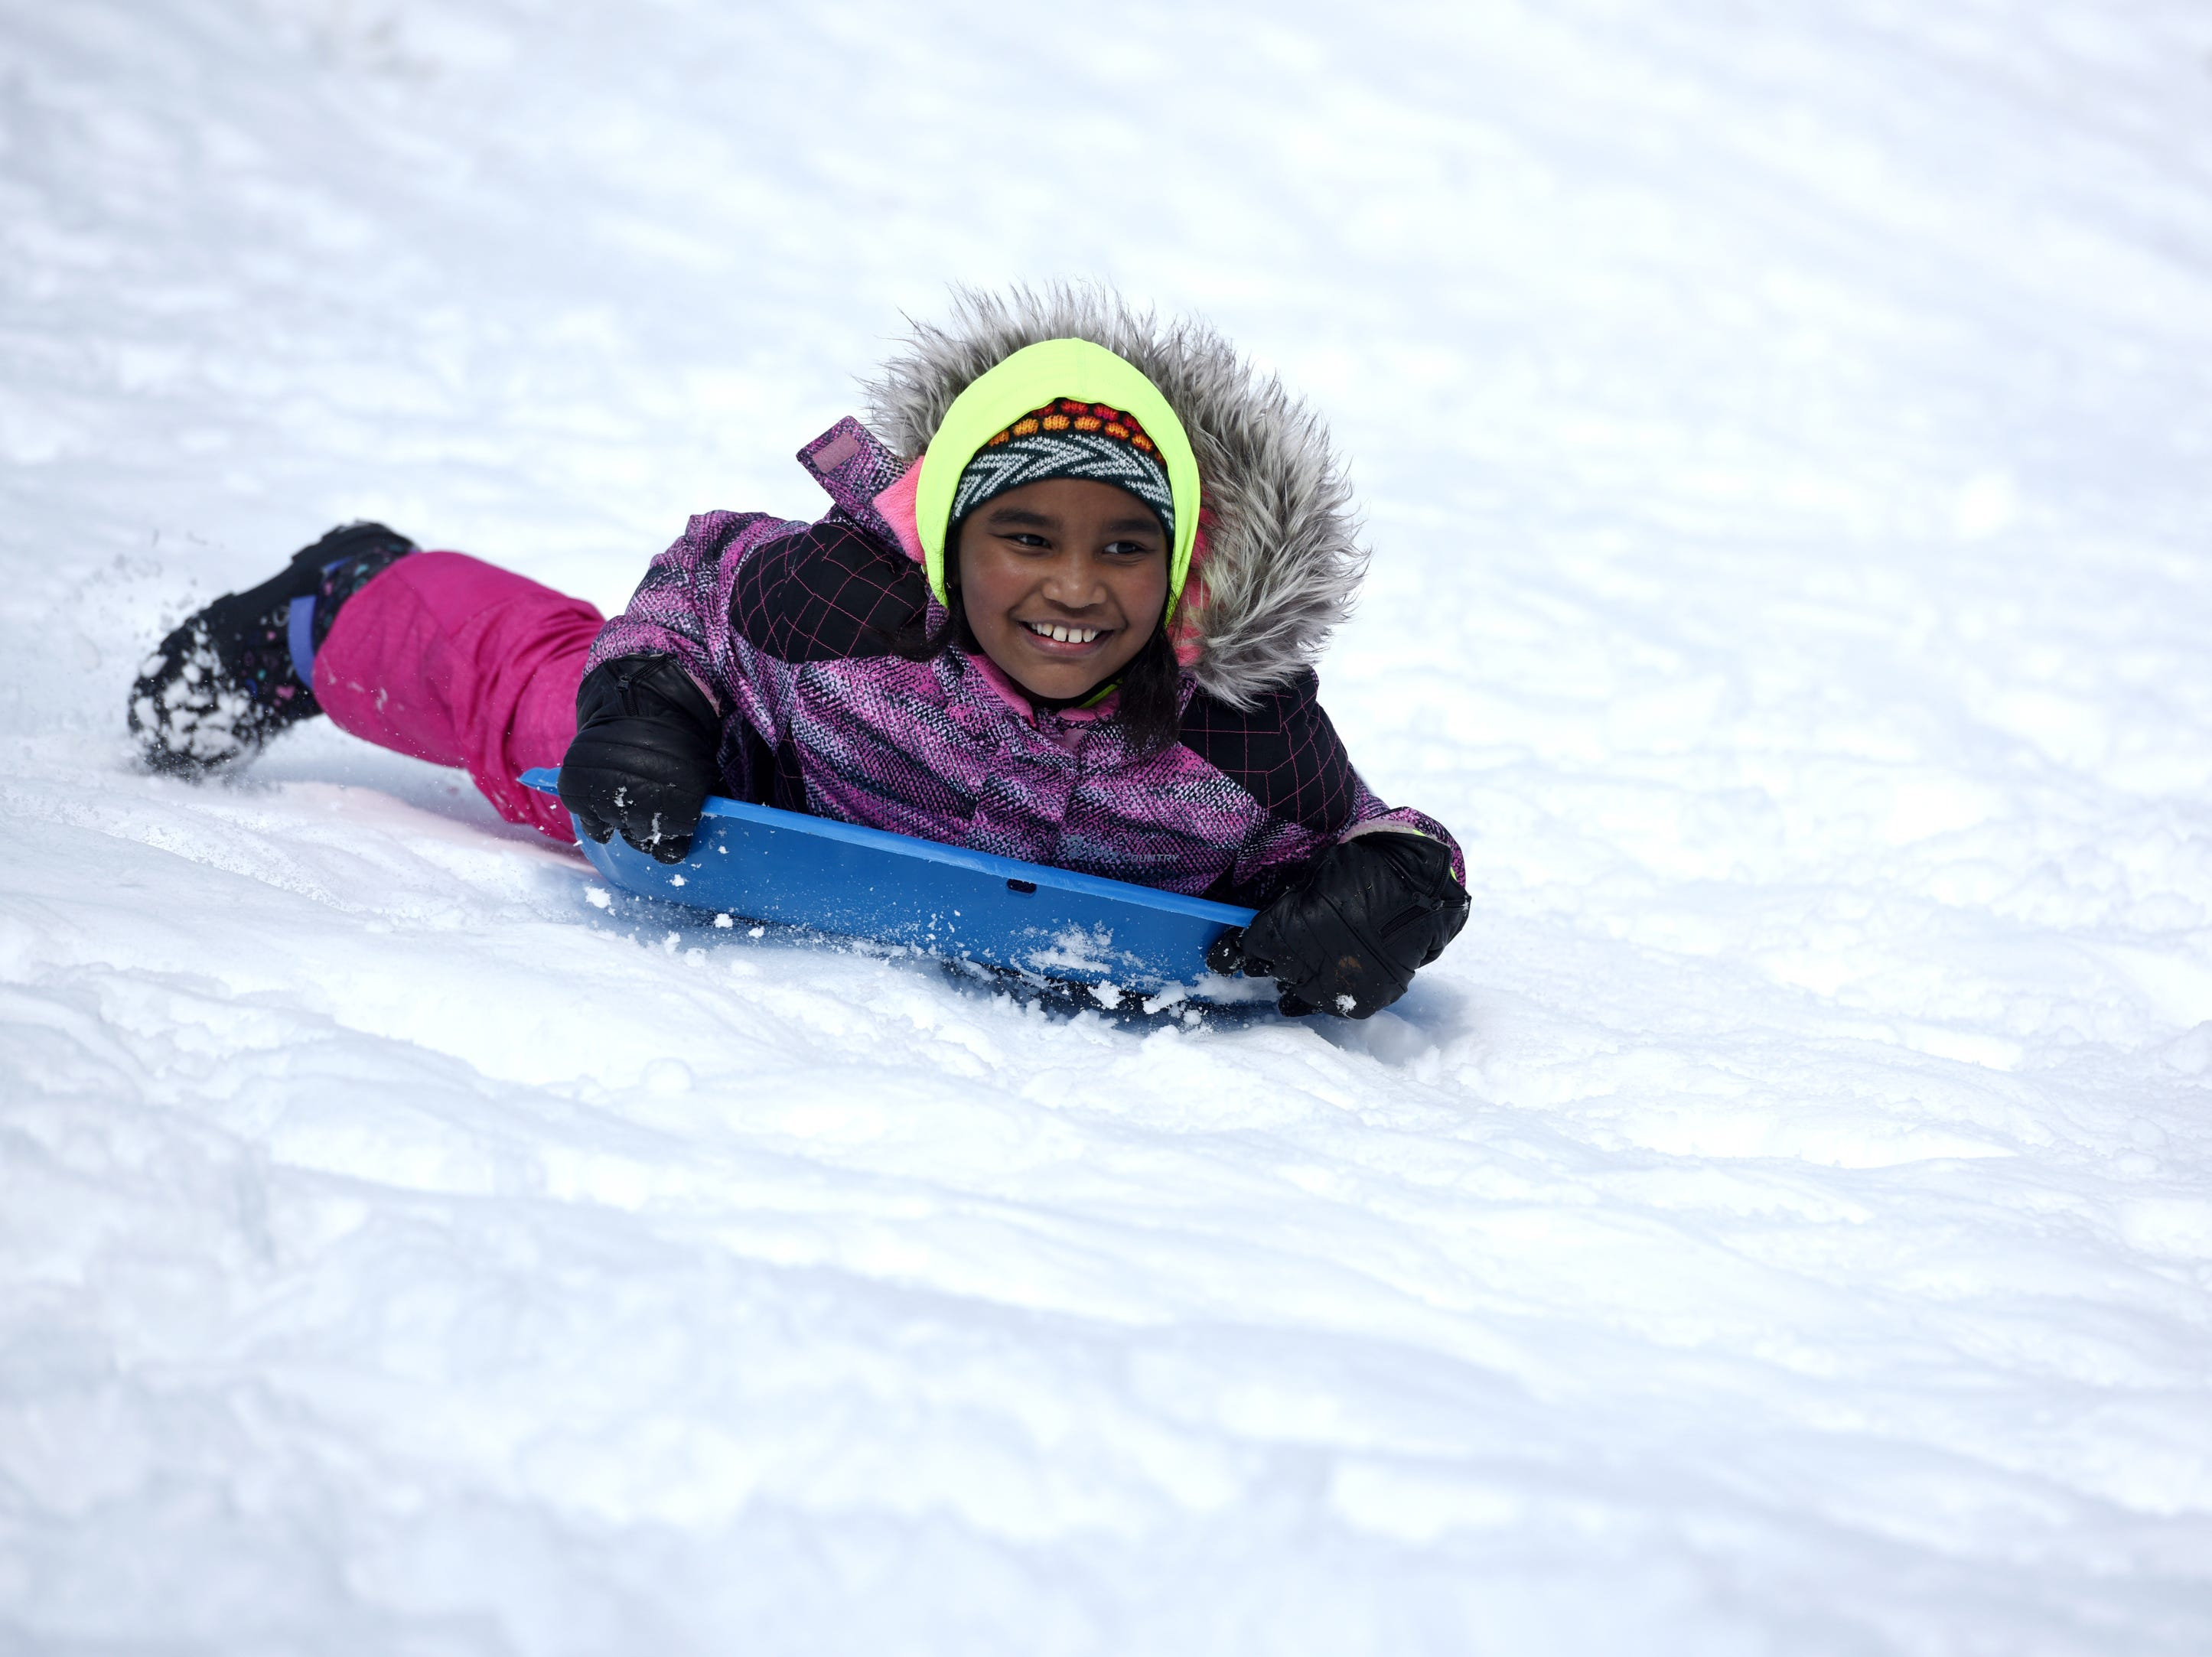 Izabellah Scott, 9, took advantage of a snow day from school with some sledding at Mt. Prospect Park in Clifton on Monday, March 4, 2019.